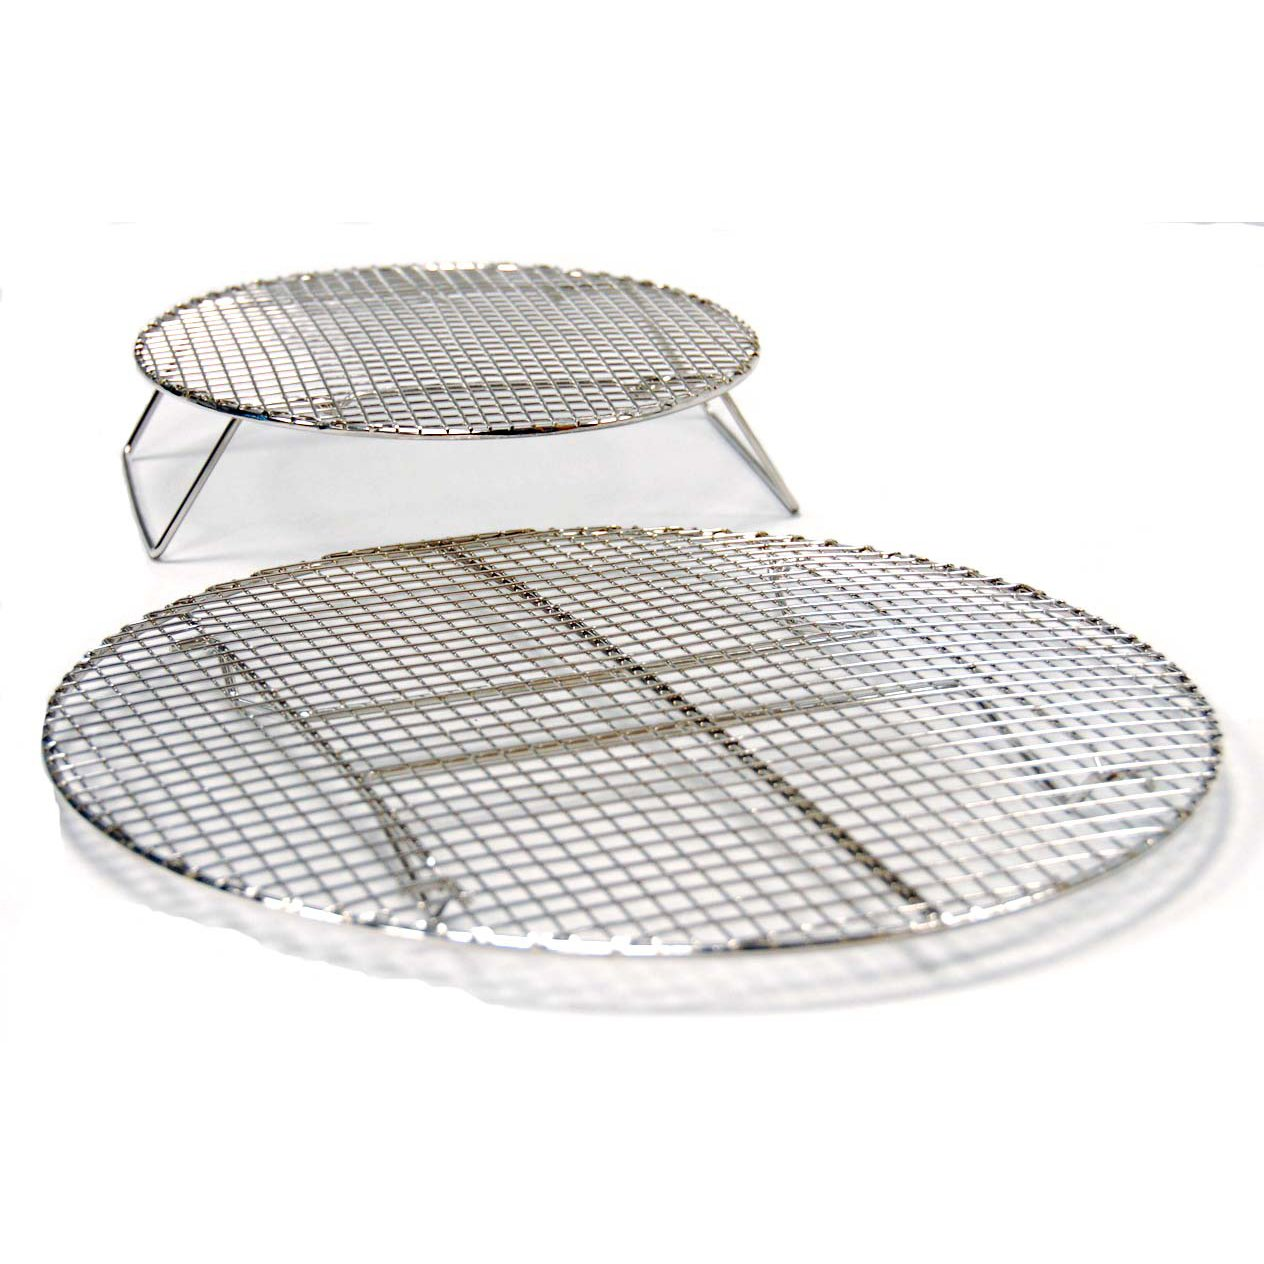 evo-outdoor-grills-2-piece-all-grills-circular-roasting-and-baking-rack-set.jpg